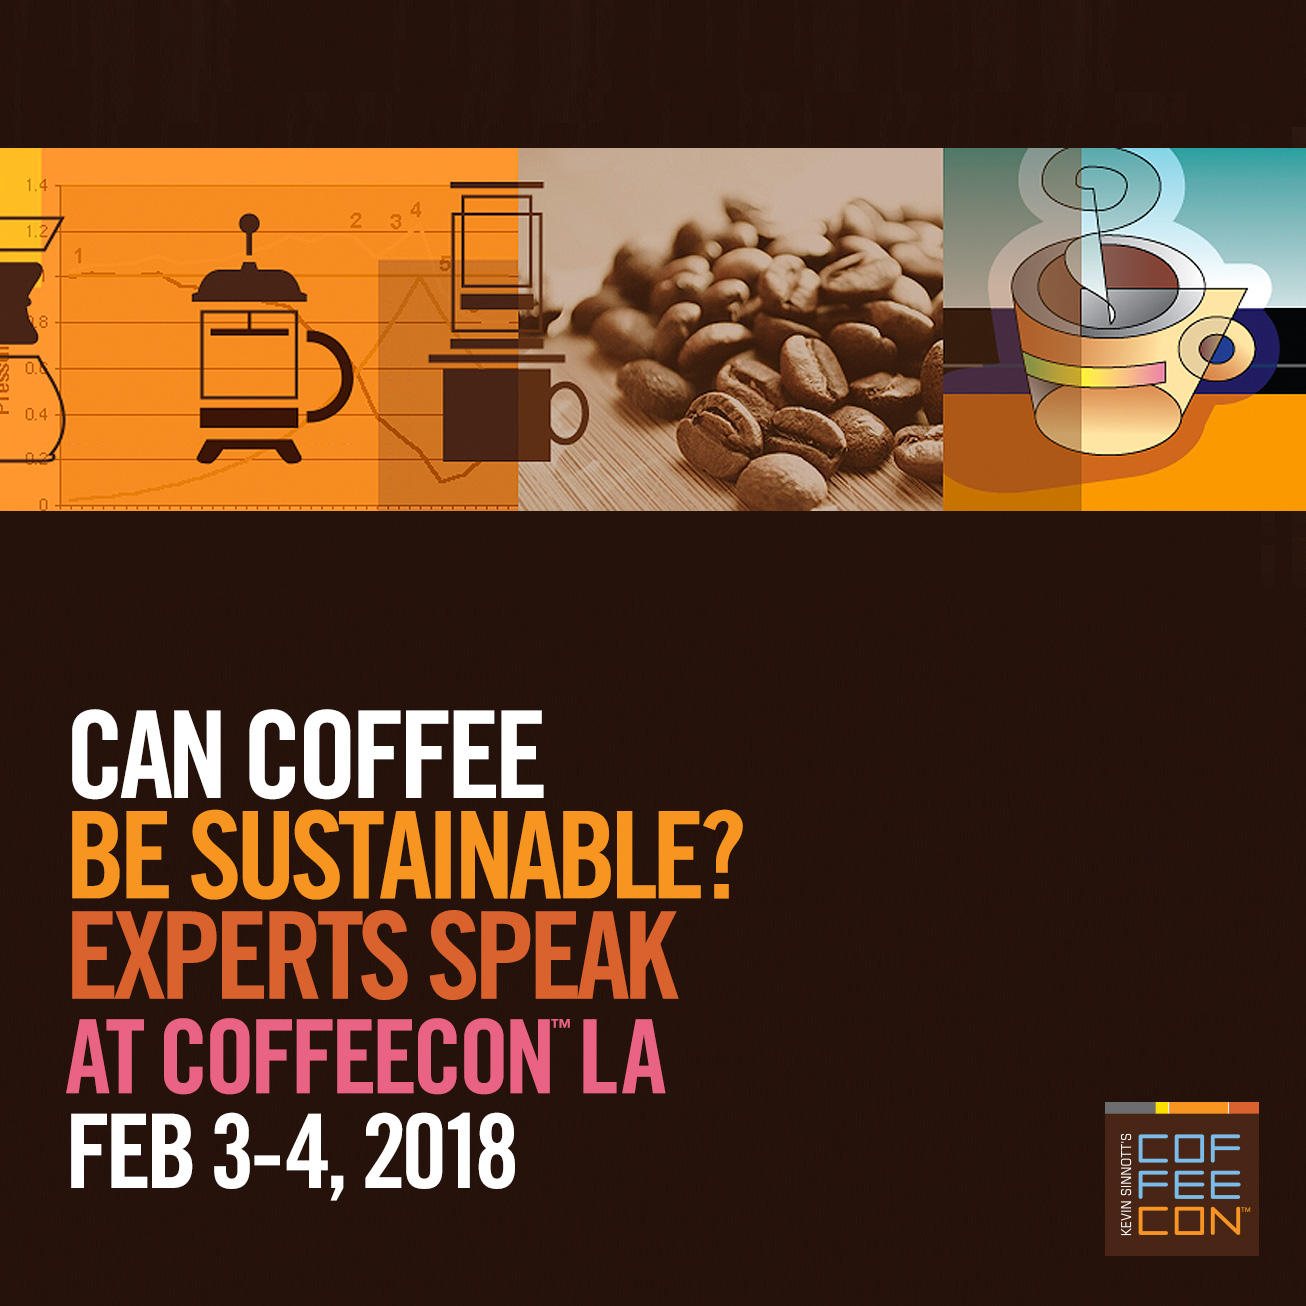 Coffee Sustainability at CoffeeConLA